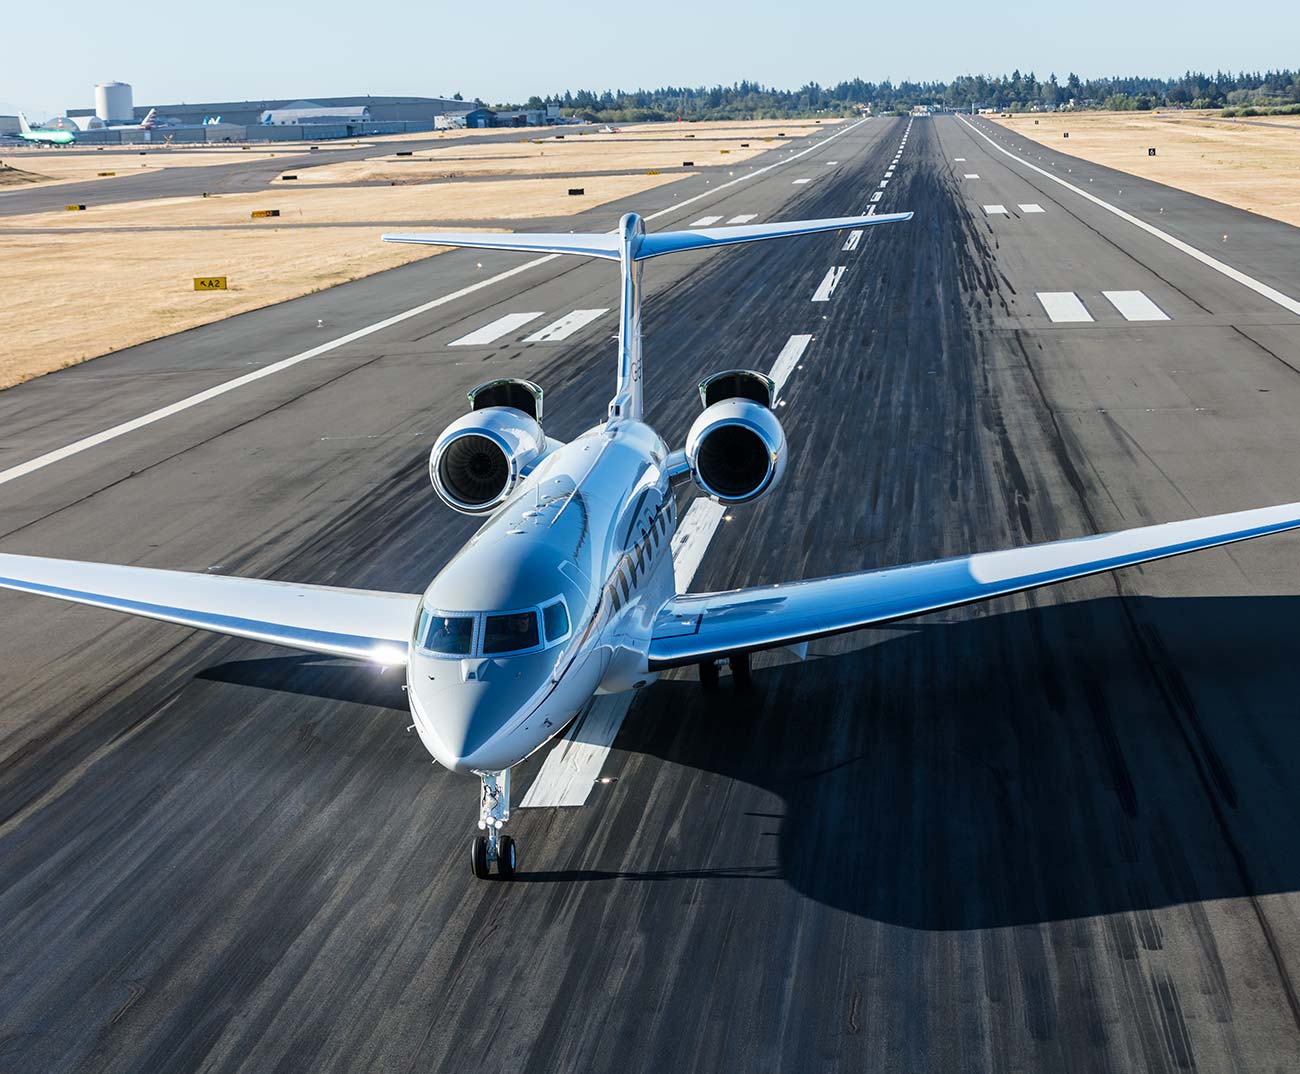 G650ER on the runway